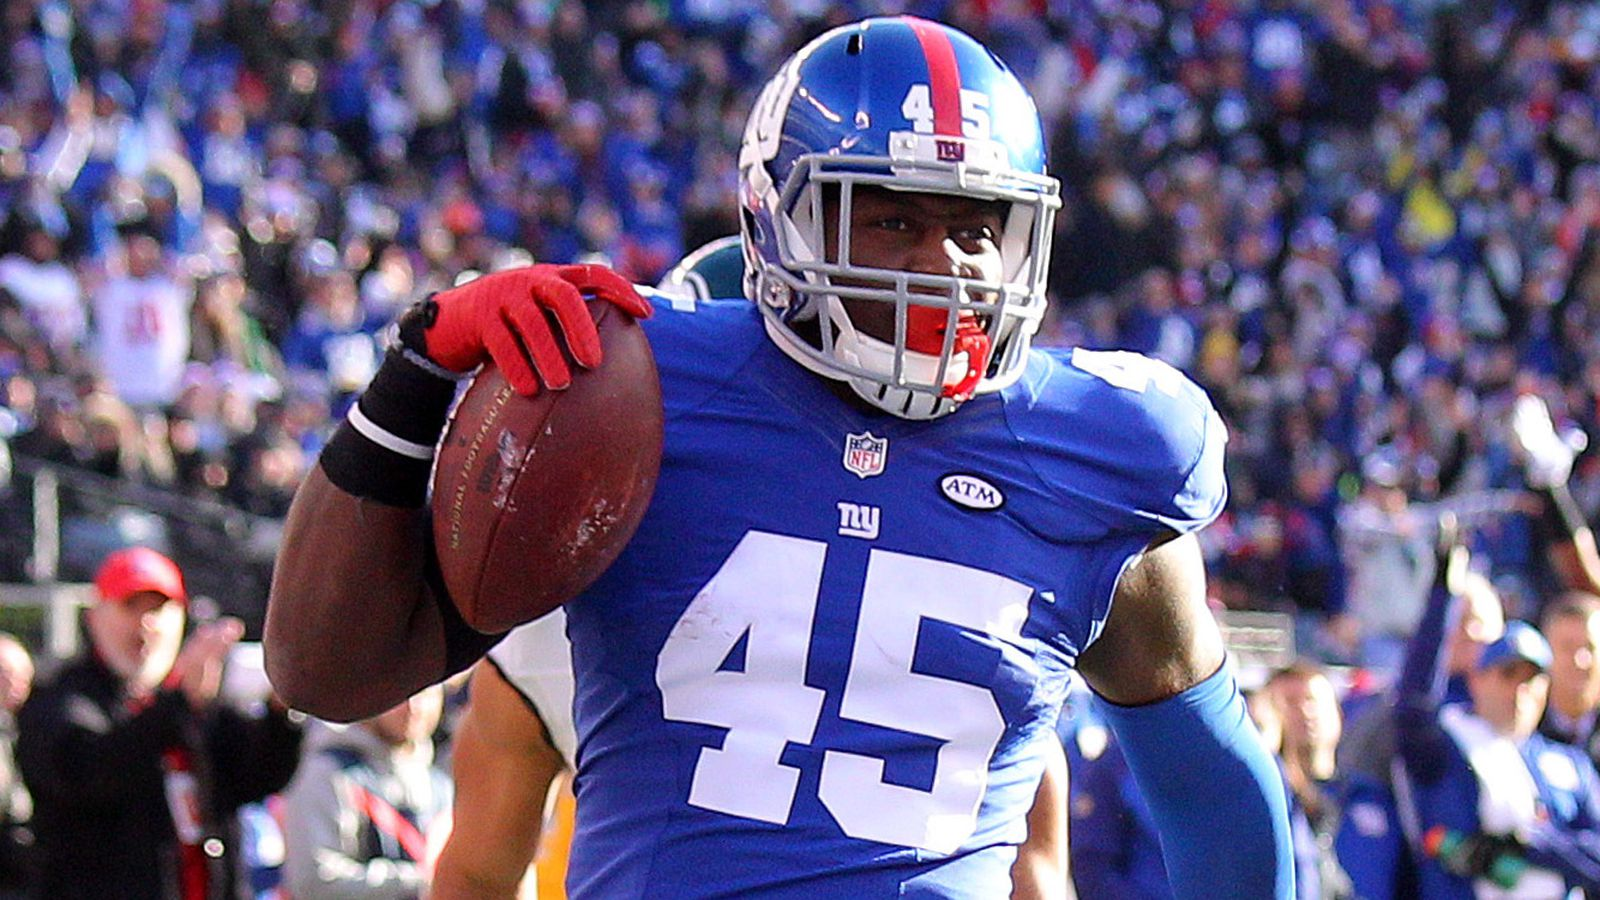 NFL Jerseys Online - Giants roster preview: Is tight end job Will Tye's to lose? - Big ...